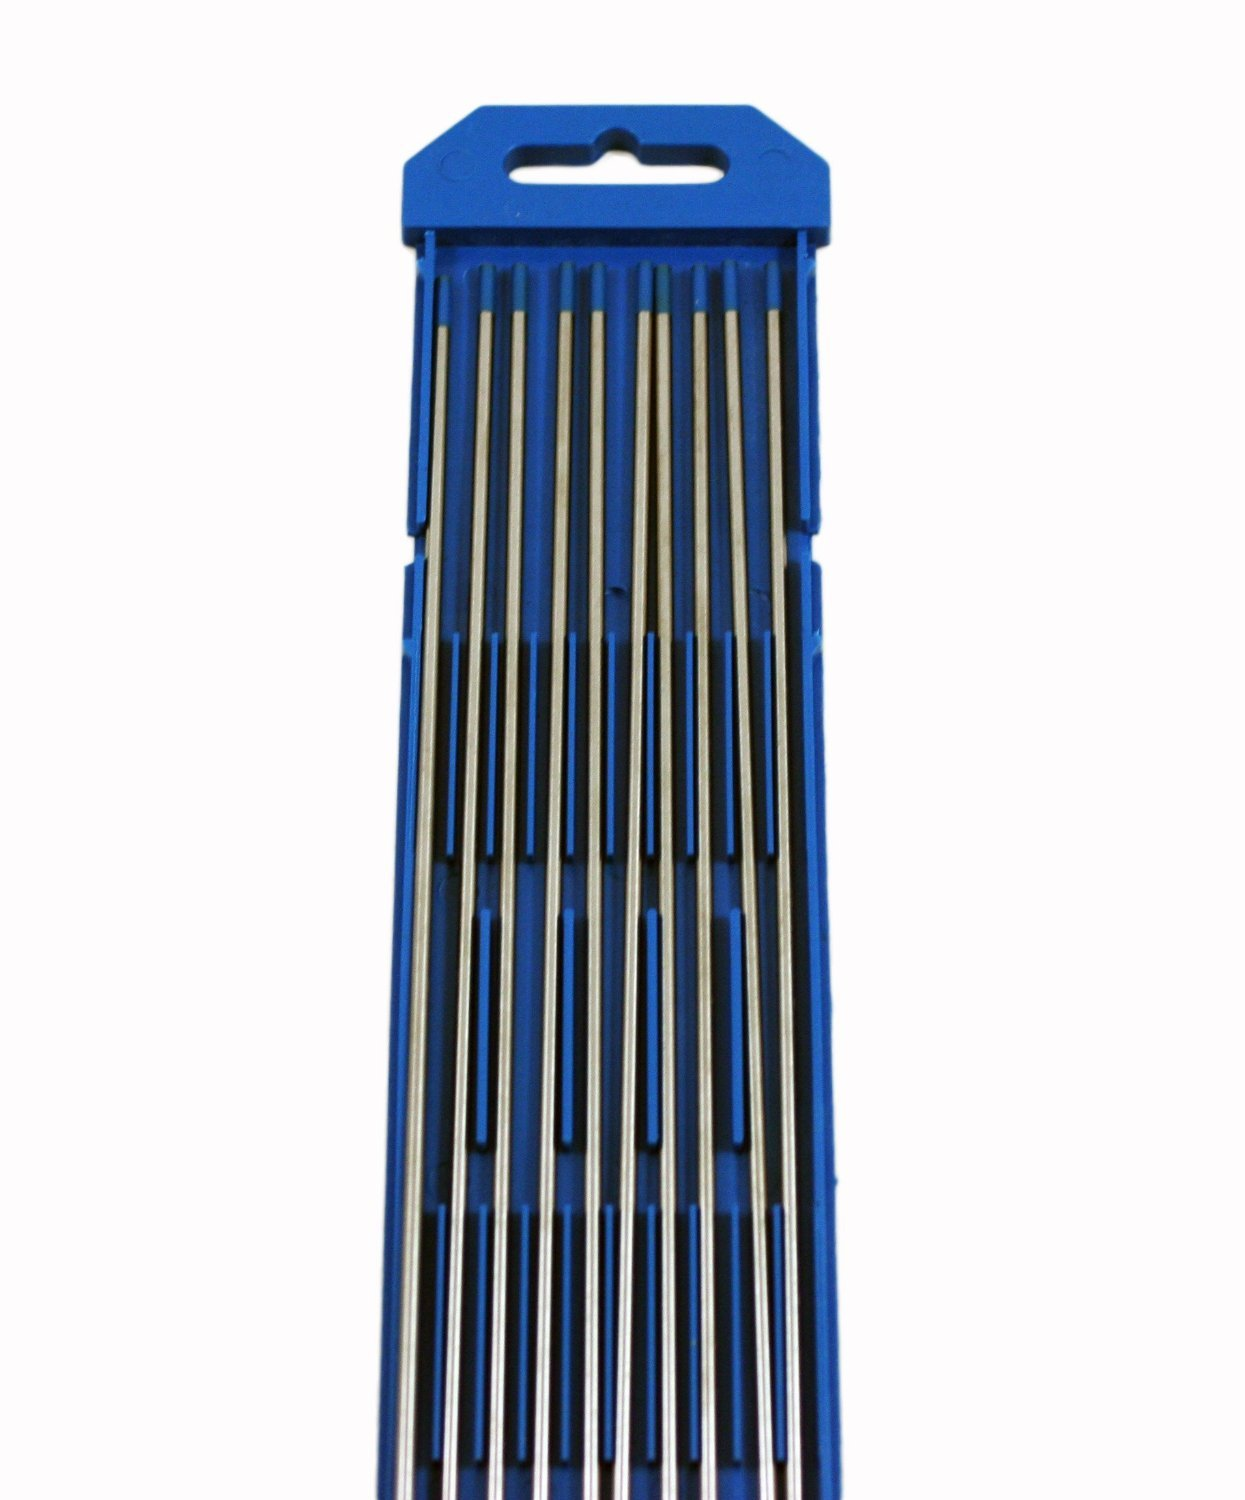 ABN Tungsten Welding Electrodes 1//16 x 7 Inch 10-Pack 1.6mm x 175mm Blue 2/% WL20 Lanthanated TIG MIG Arc AC DC